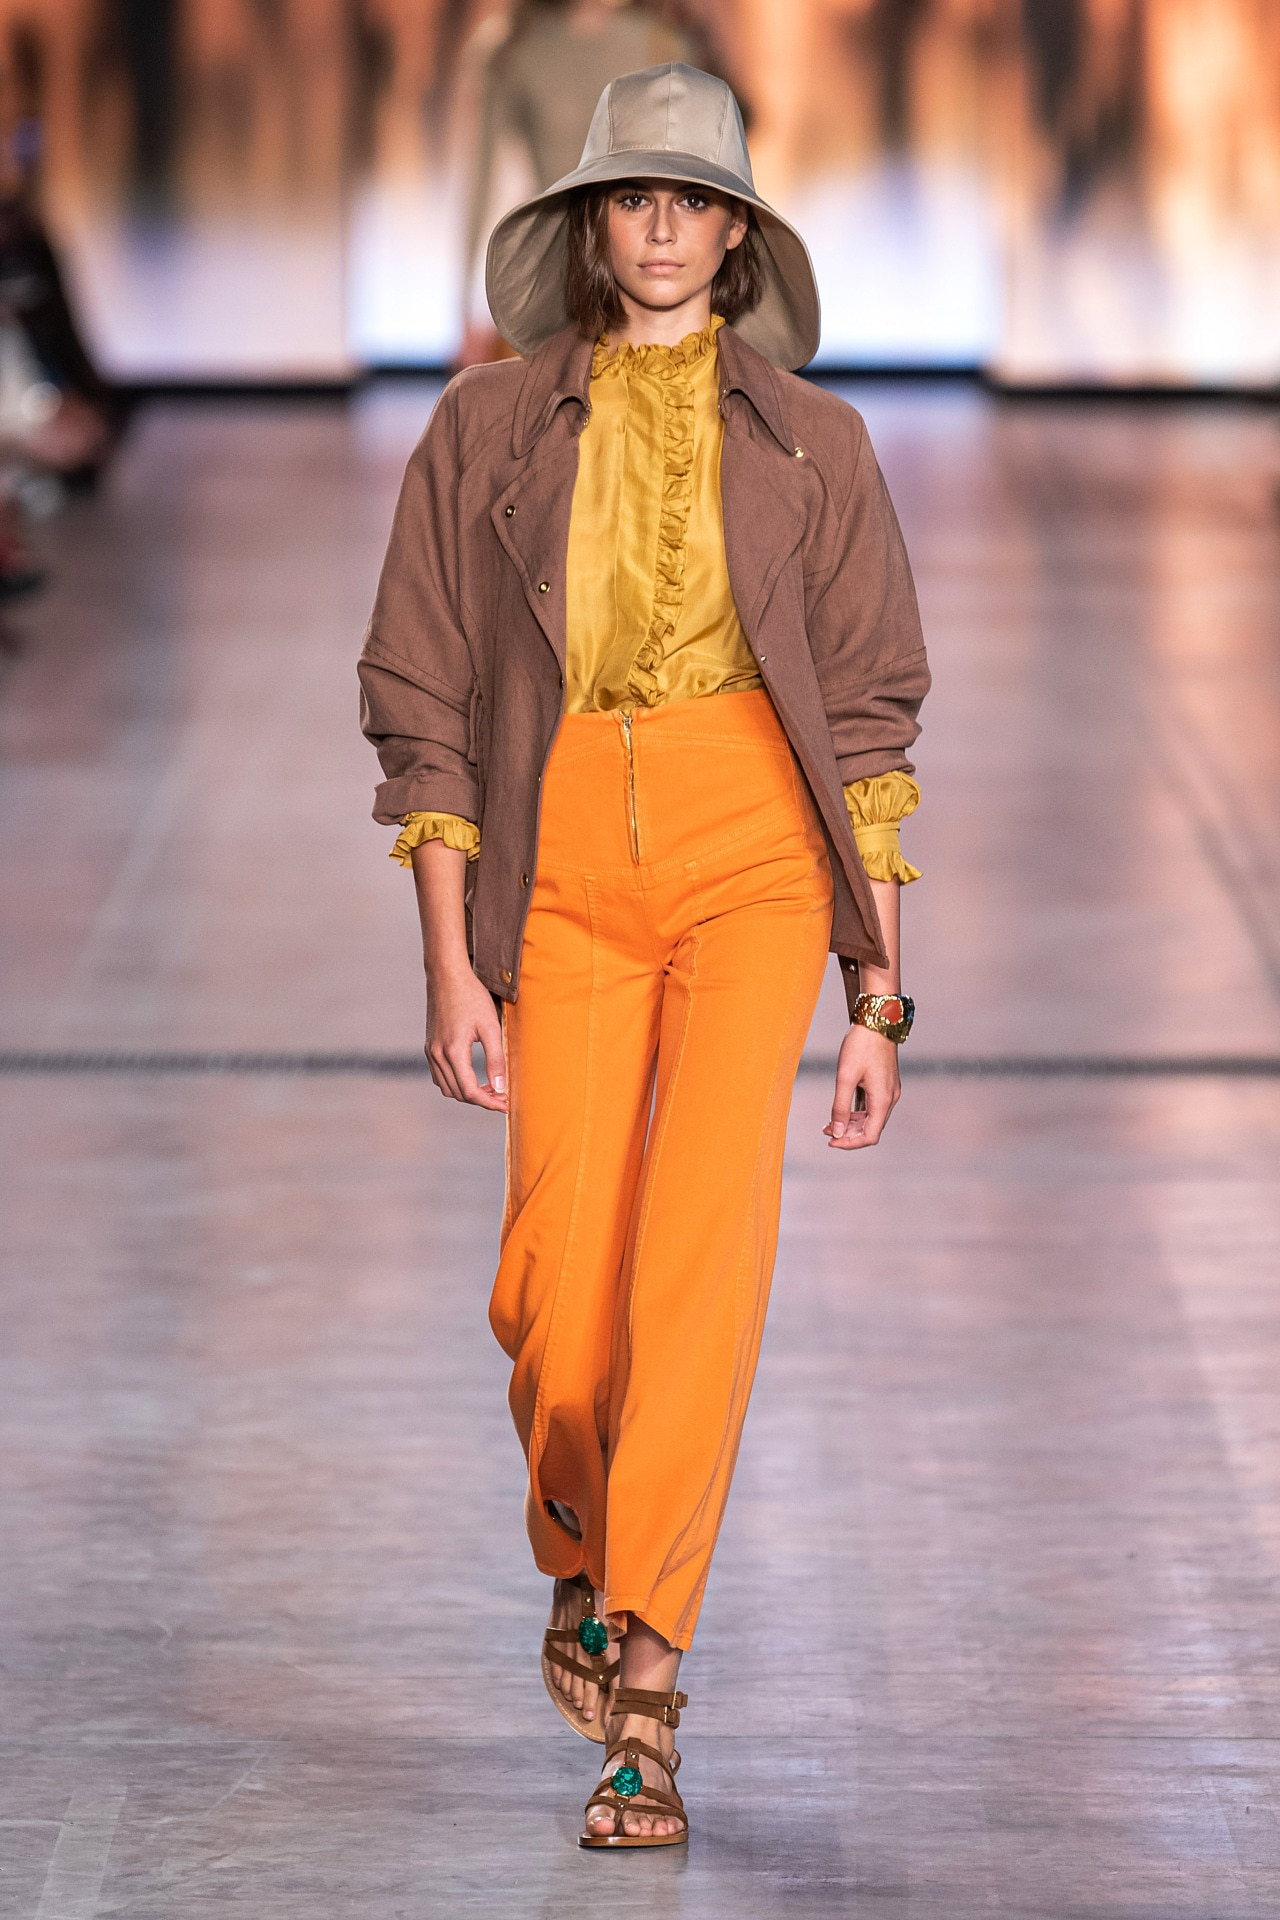 Alberta Ferretti ready-to-wear spring/summer 2020